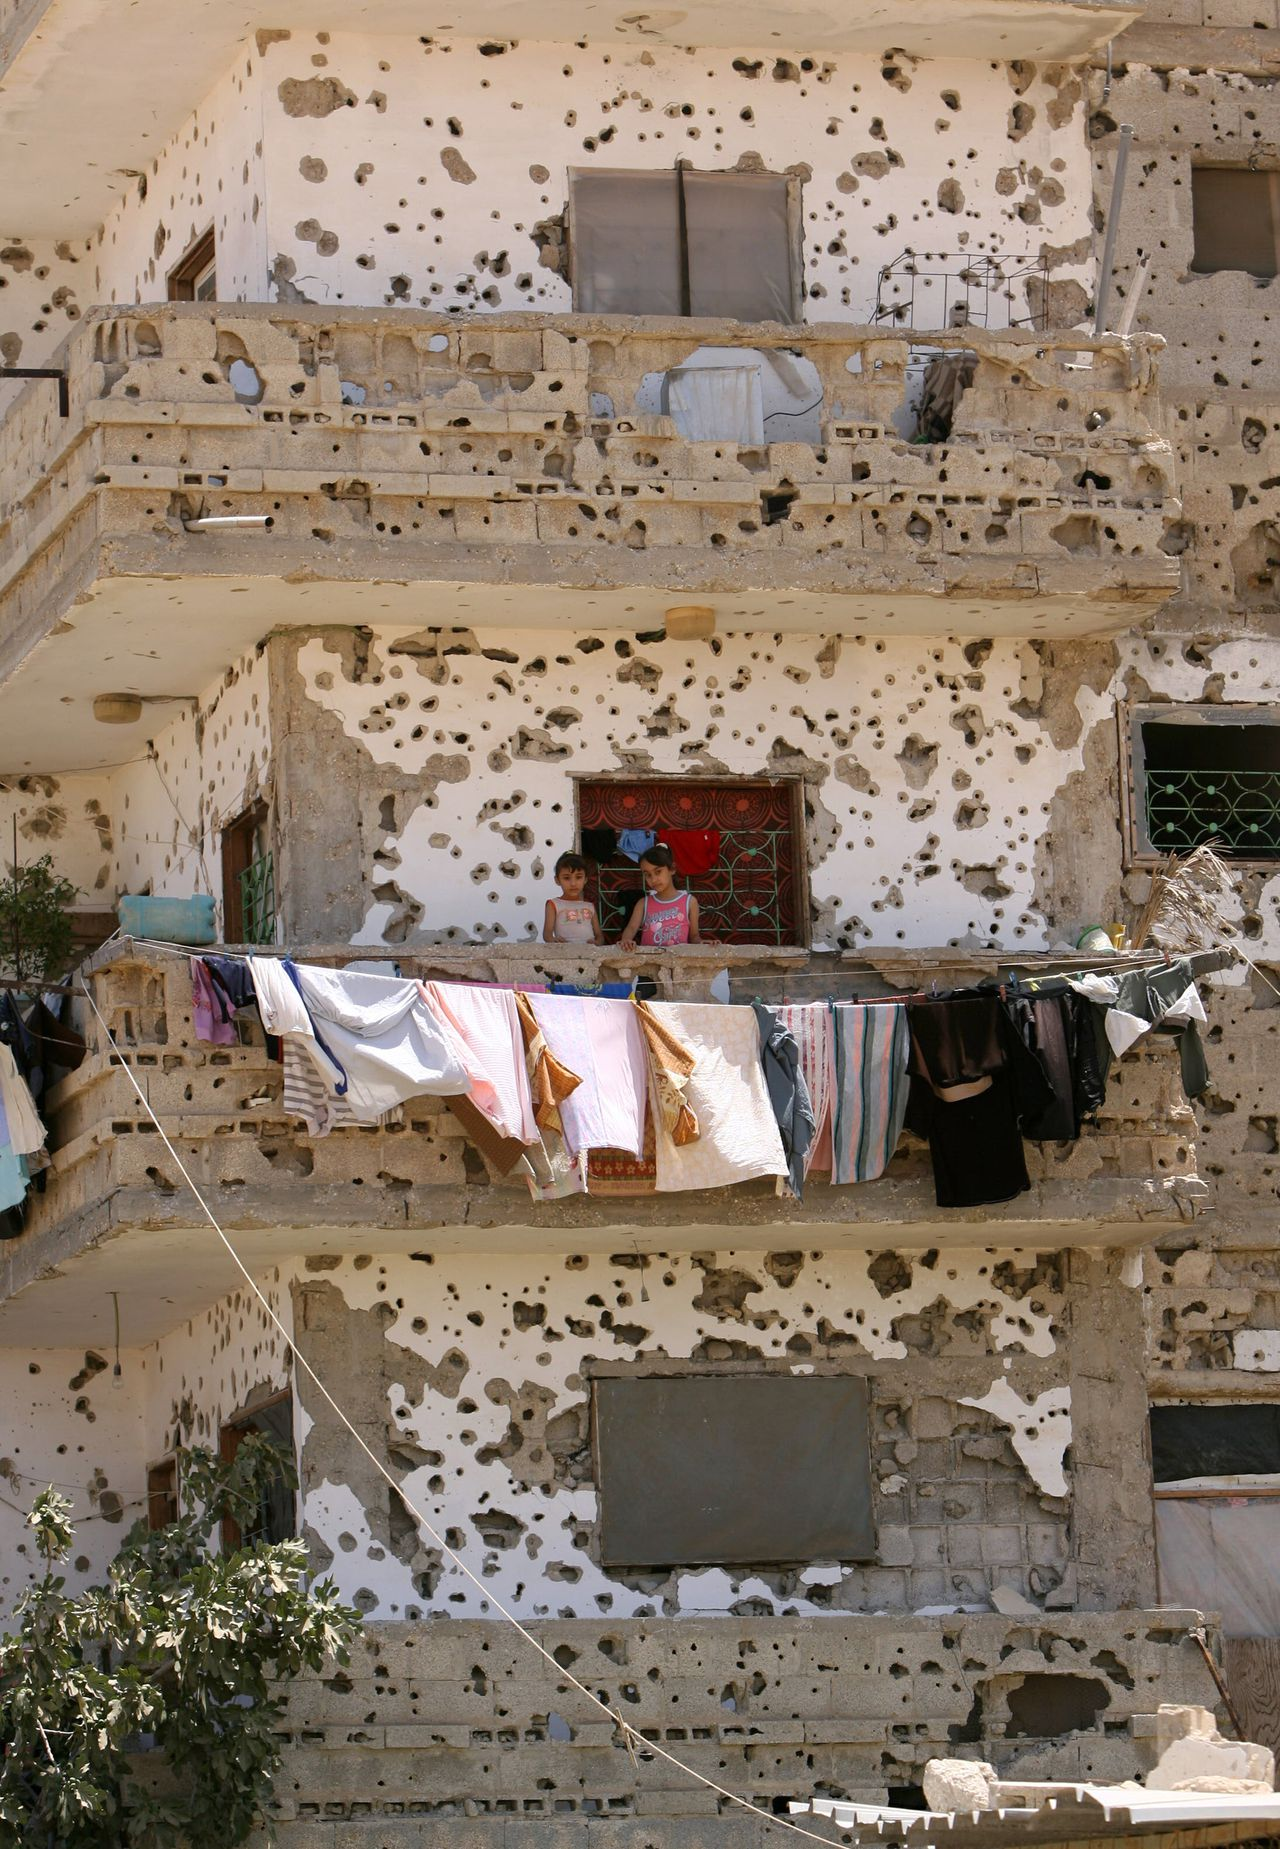 "Palestijnse meisjes staan op het balkon van hun beschoten huis in Rafah in de Gazastrook. (Foto AFP) Palestinian girls stand on the balcony of the ruined house, hit during Israel?s 22-day offensive over Gaza, on July 02 2009 in Rafah, southern Gaza Strip. Amnesty International said Israel inflicted ""wanton destruction"" in the Gaza Strip in attacks that often targeted Palestinian civilians during an offensive in December and January in the Hamas-run enclave. The London-based human rights group also accused Hamas of war crimes, but said it found no evidence to support Israeli claims that Gaza's Islamist rulers used civilians as human shields during Israel's massive 22-day offensive. AFP PHOTO/ SAID KHATIB"